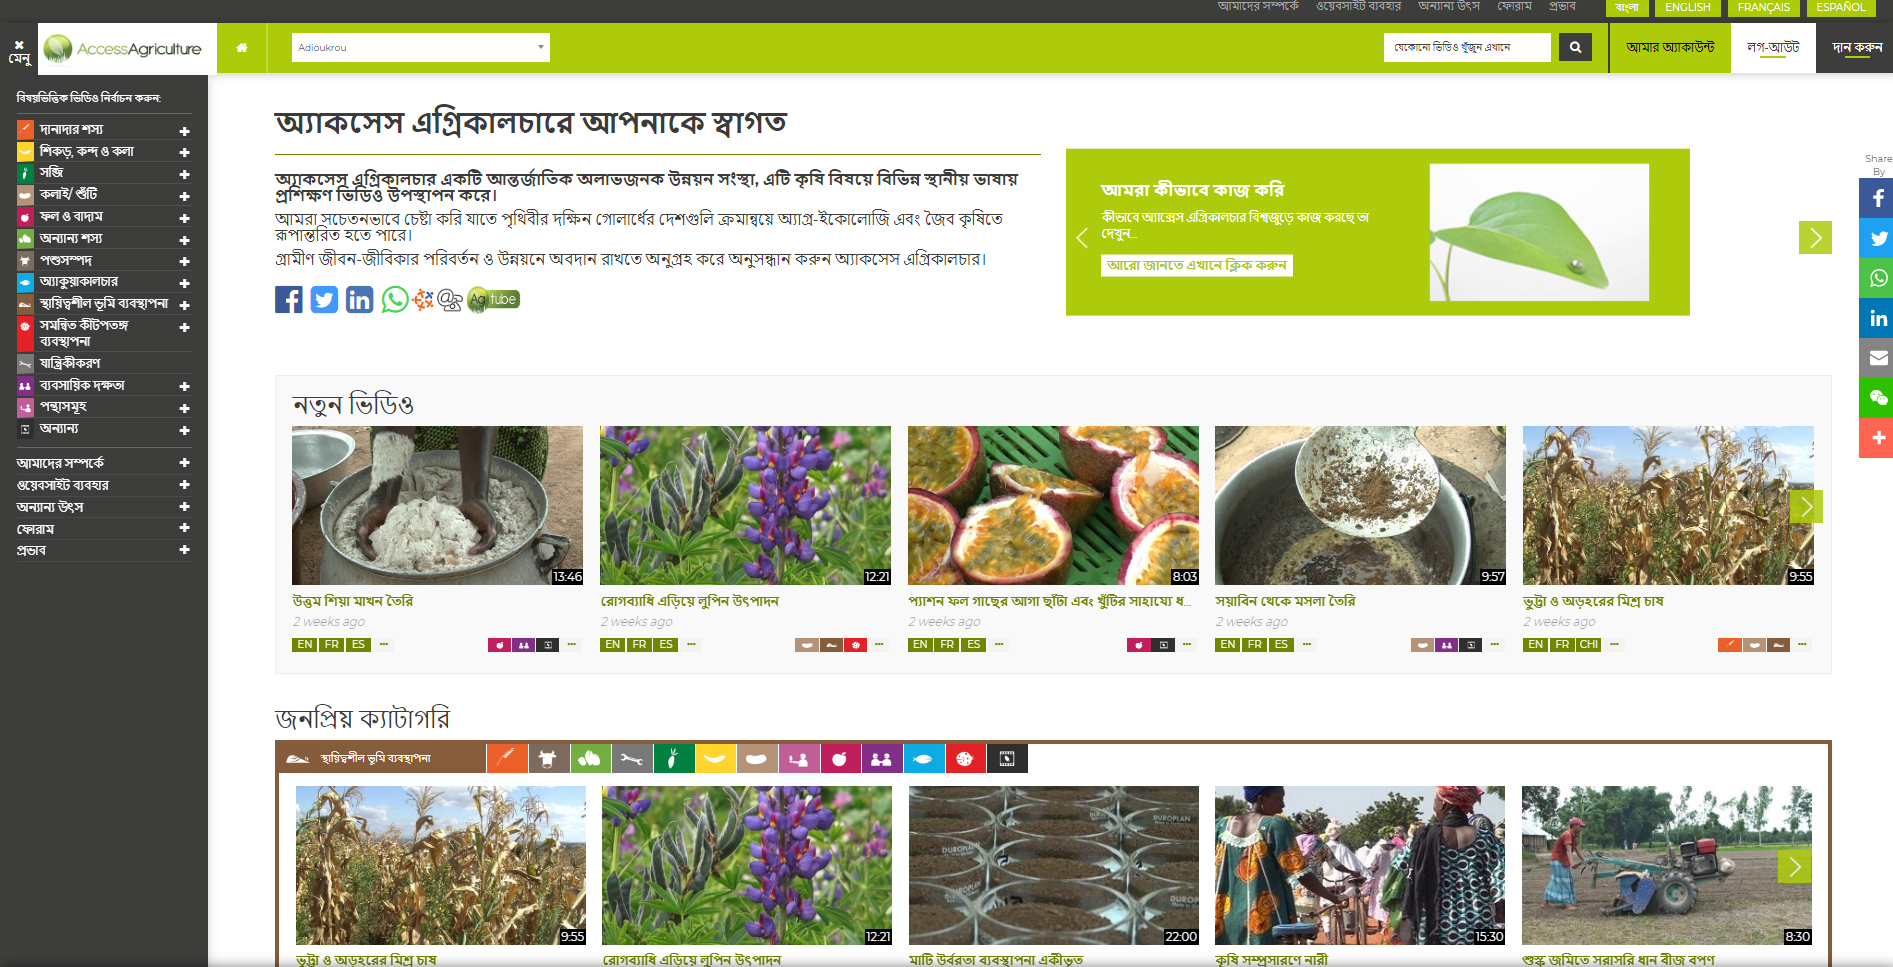 Sitio web de Access Agriculture Bangla